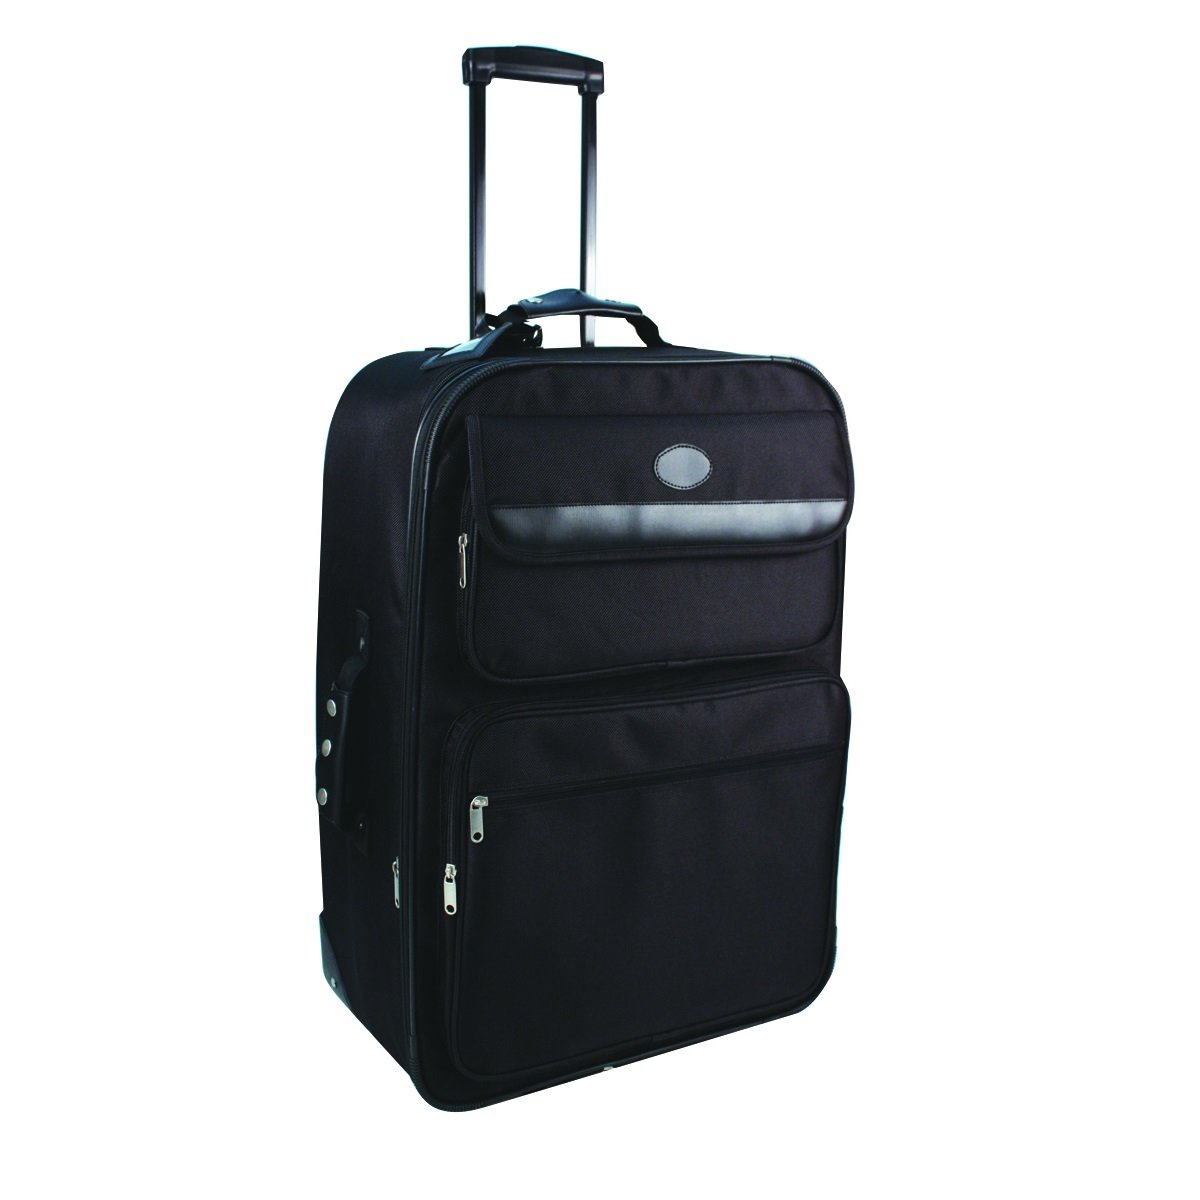 City Lights Expandable Suitcase on Wheels with Telescopic Handle Black